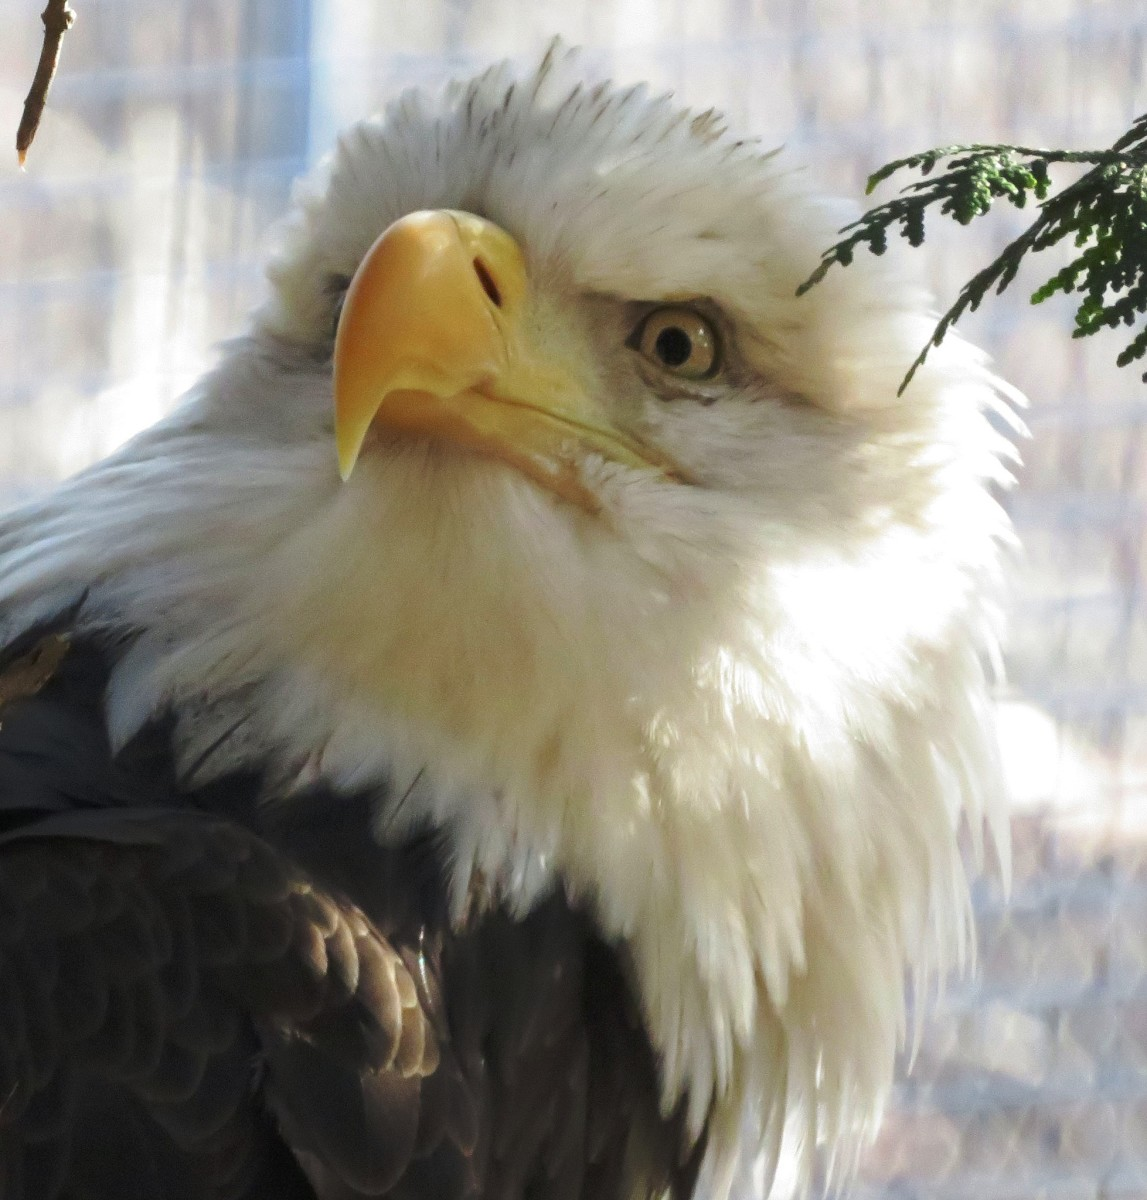 Bald Eagle at the NEW Zoo in Green Bay, Wisconsin